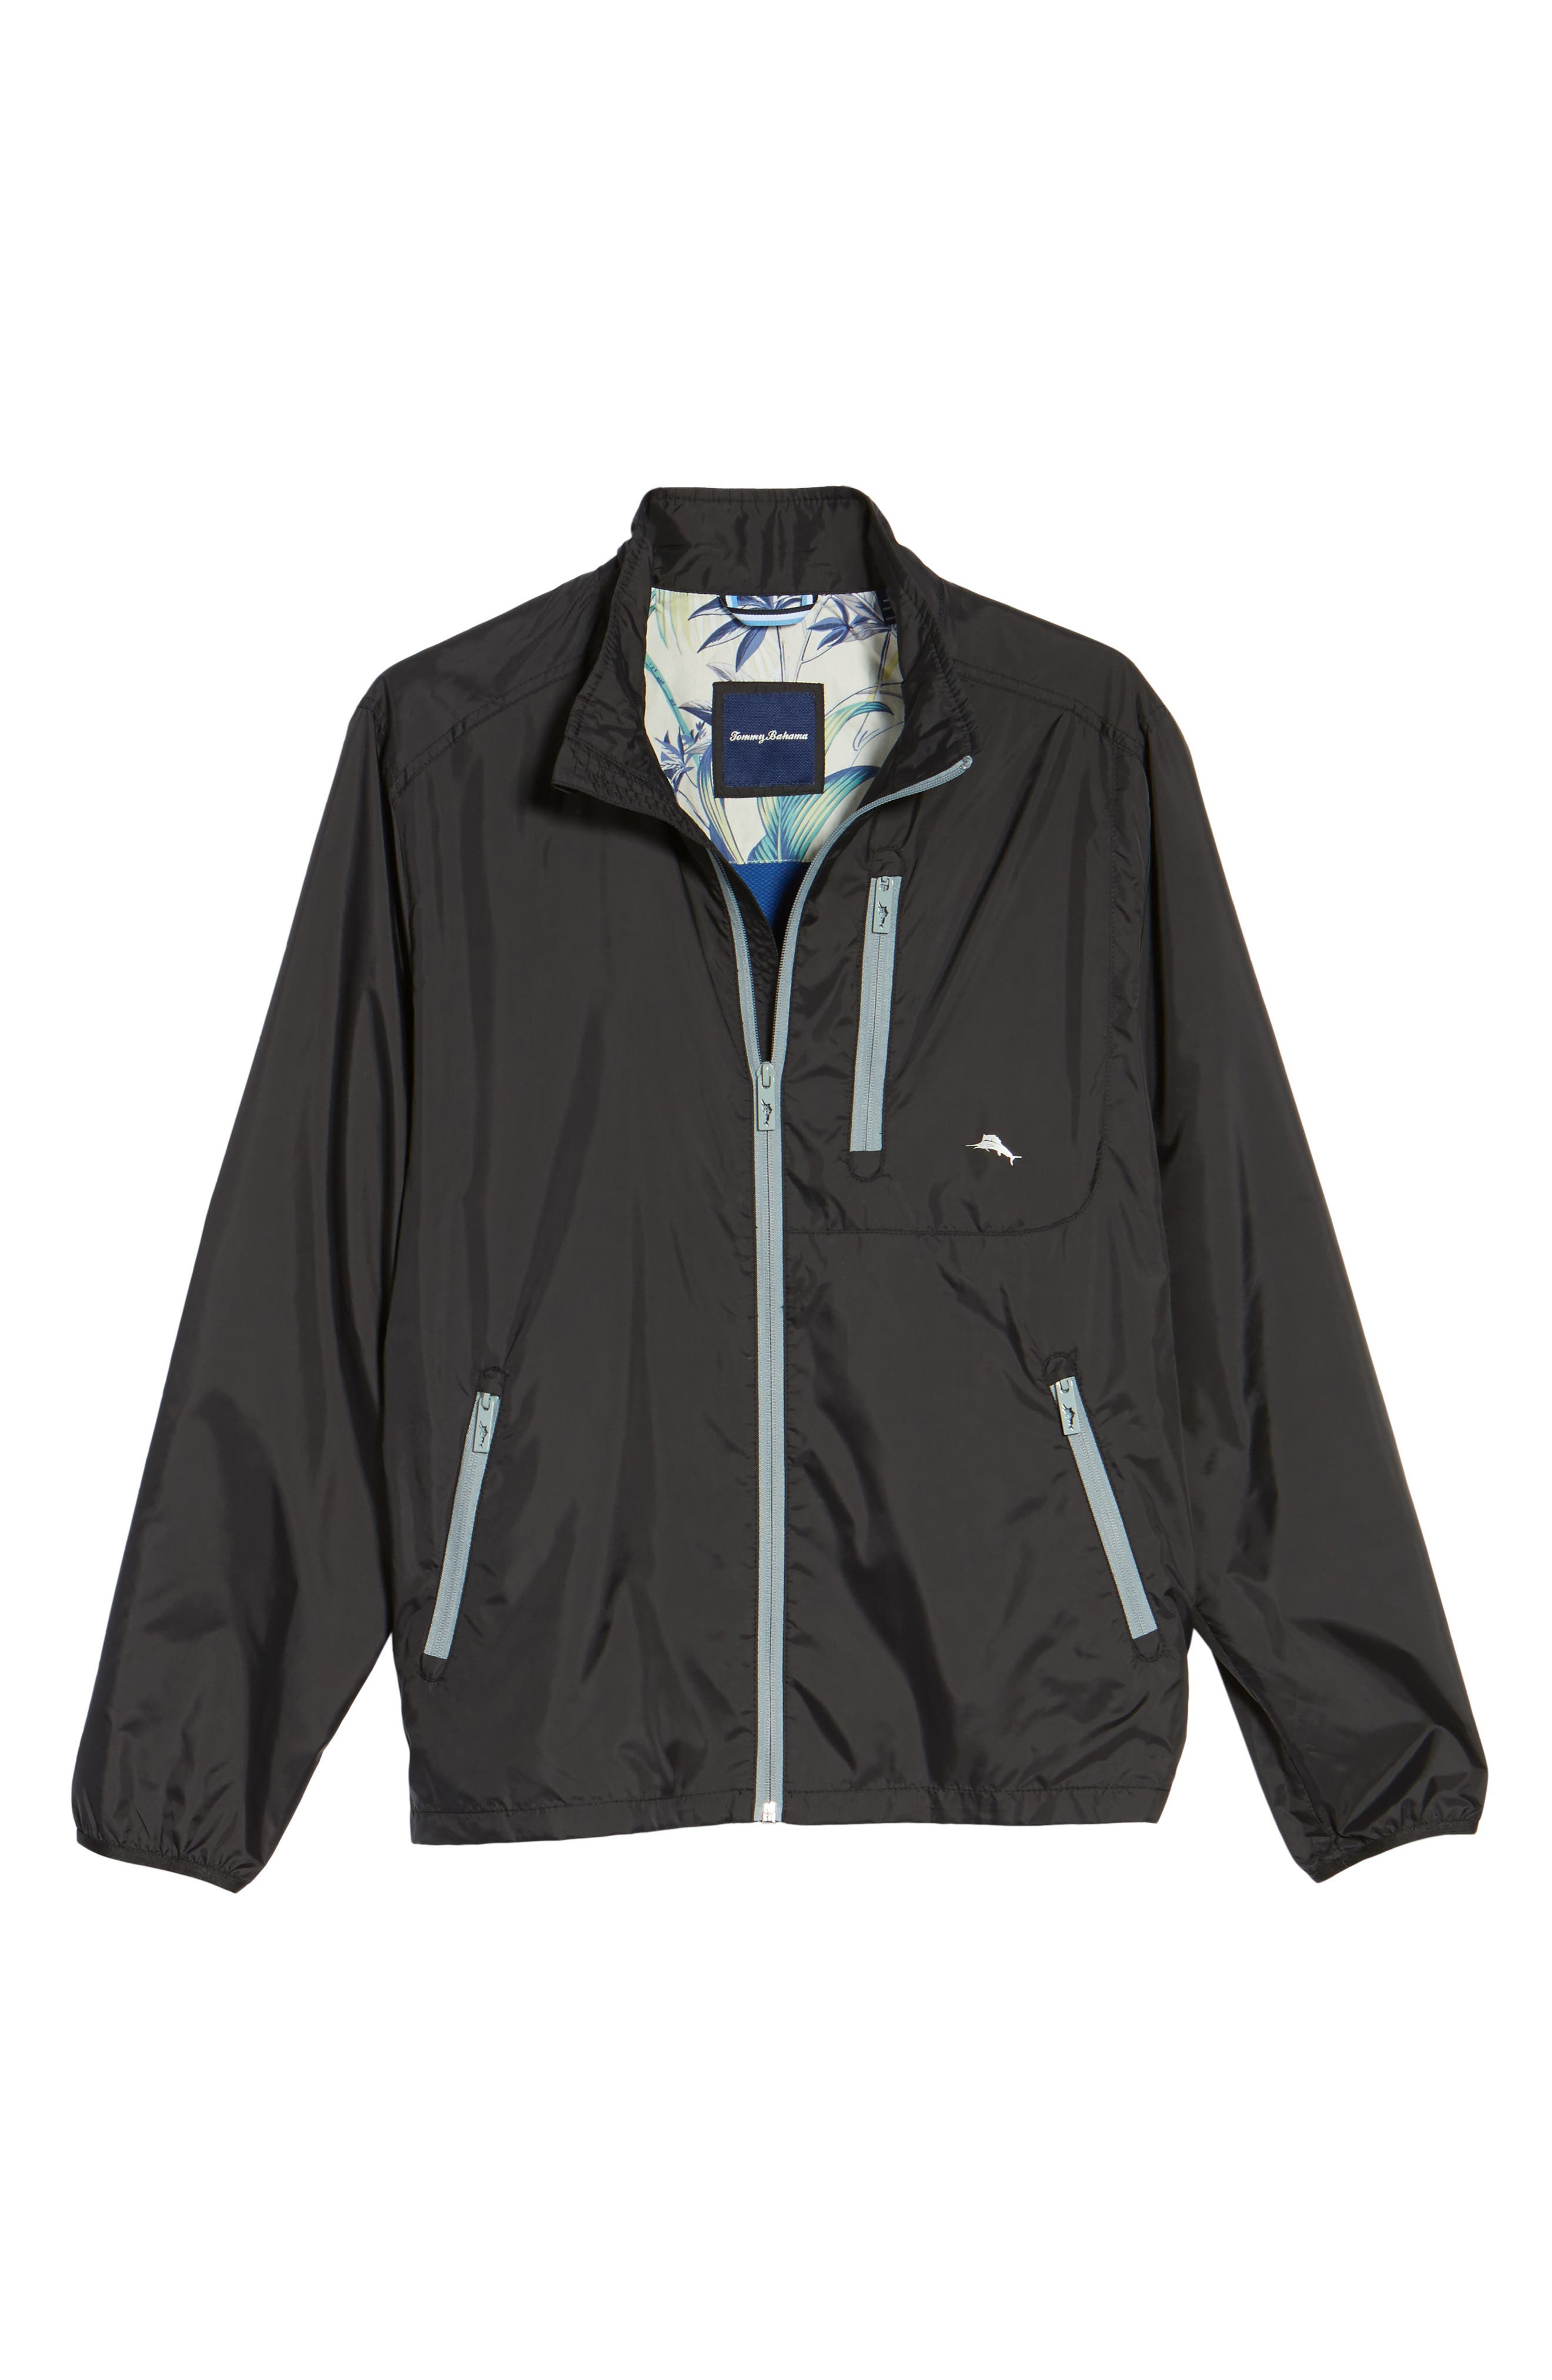 Nine Iron Water-Repellent Jacket,                             Alternate thumbnail 5, color,                             001